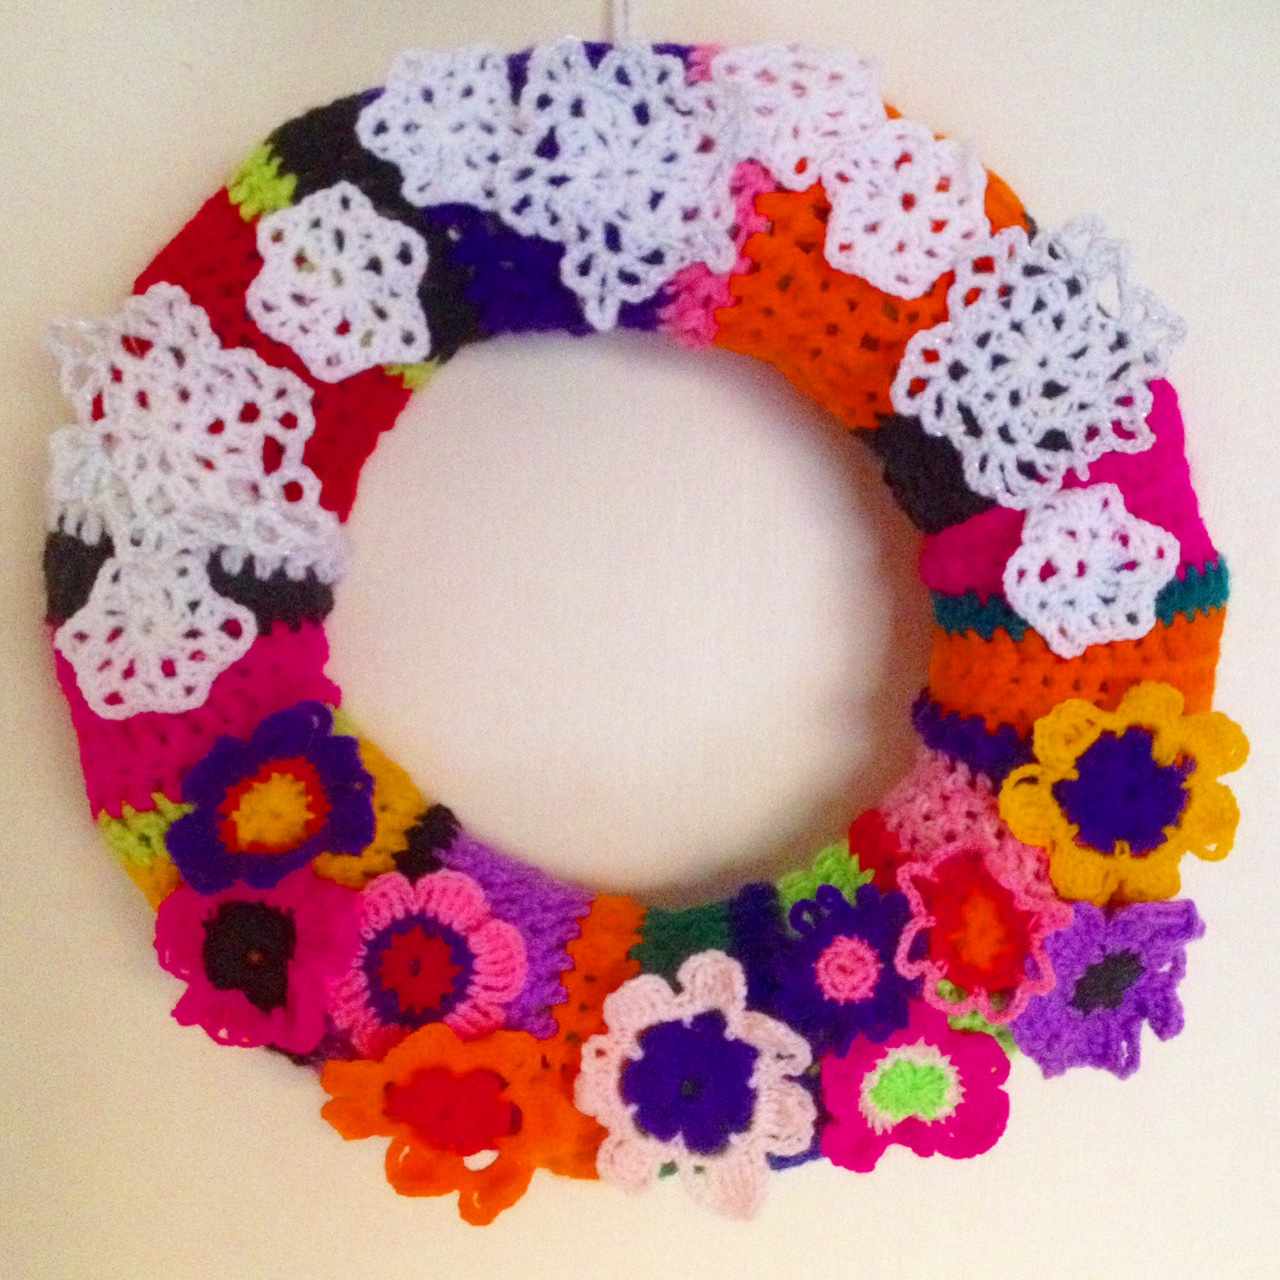 My Crochet Christmas Wreath made from Recycled Plastic Bottles